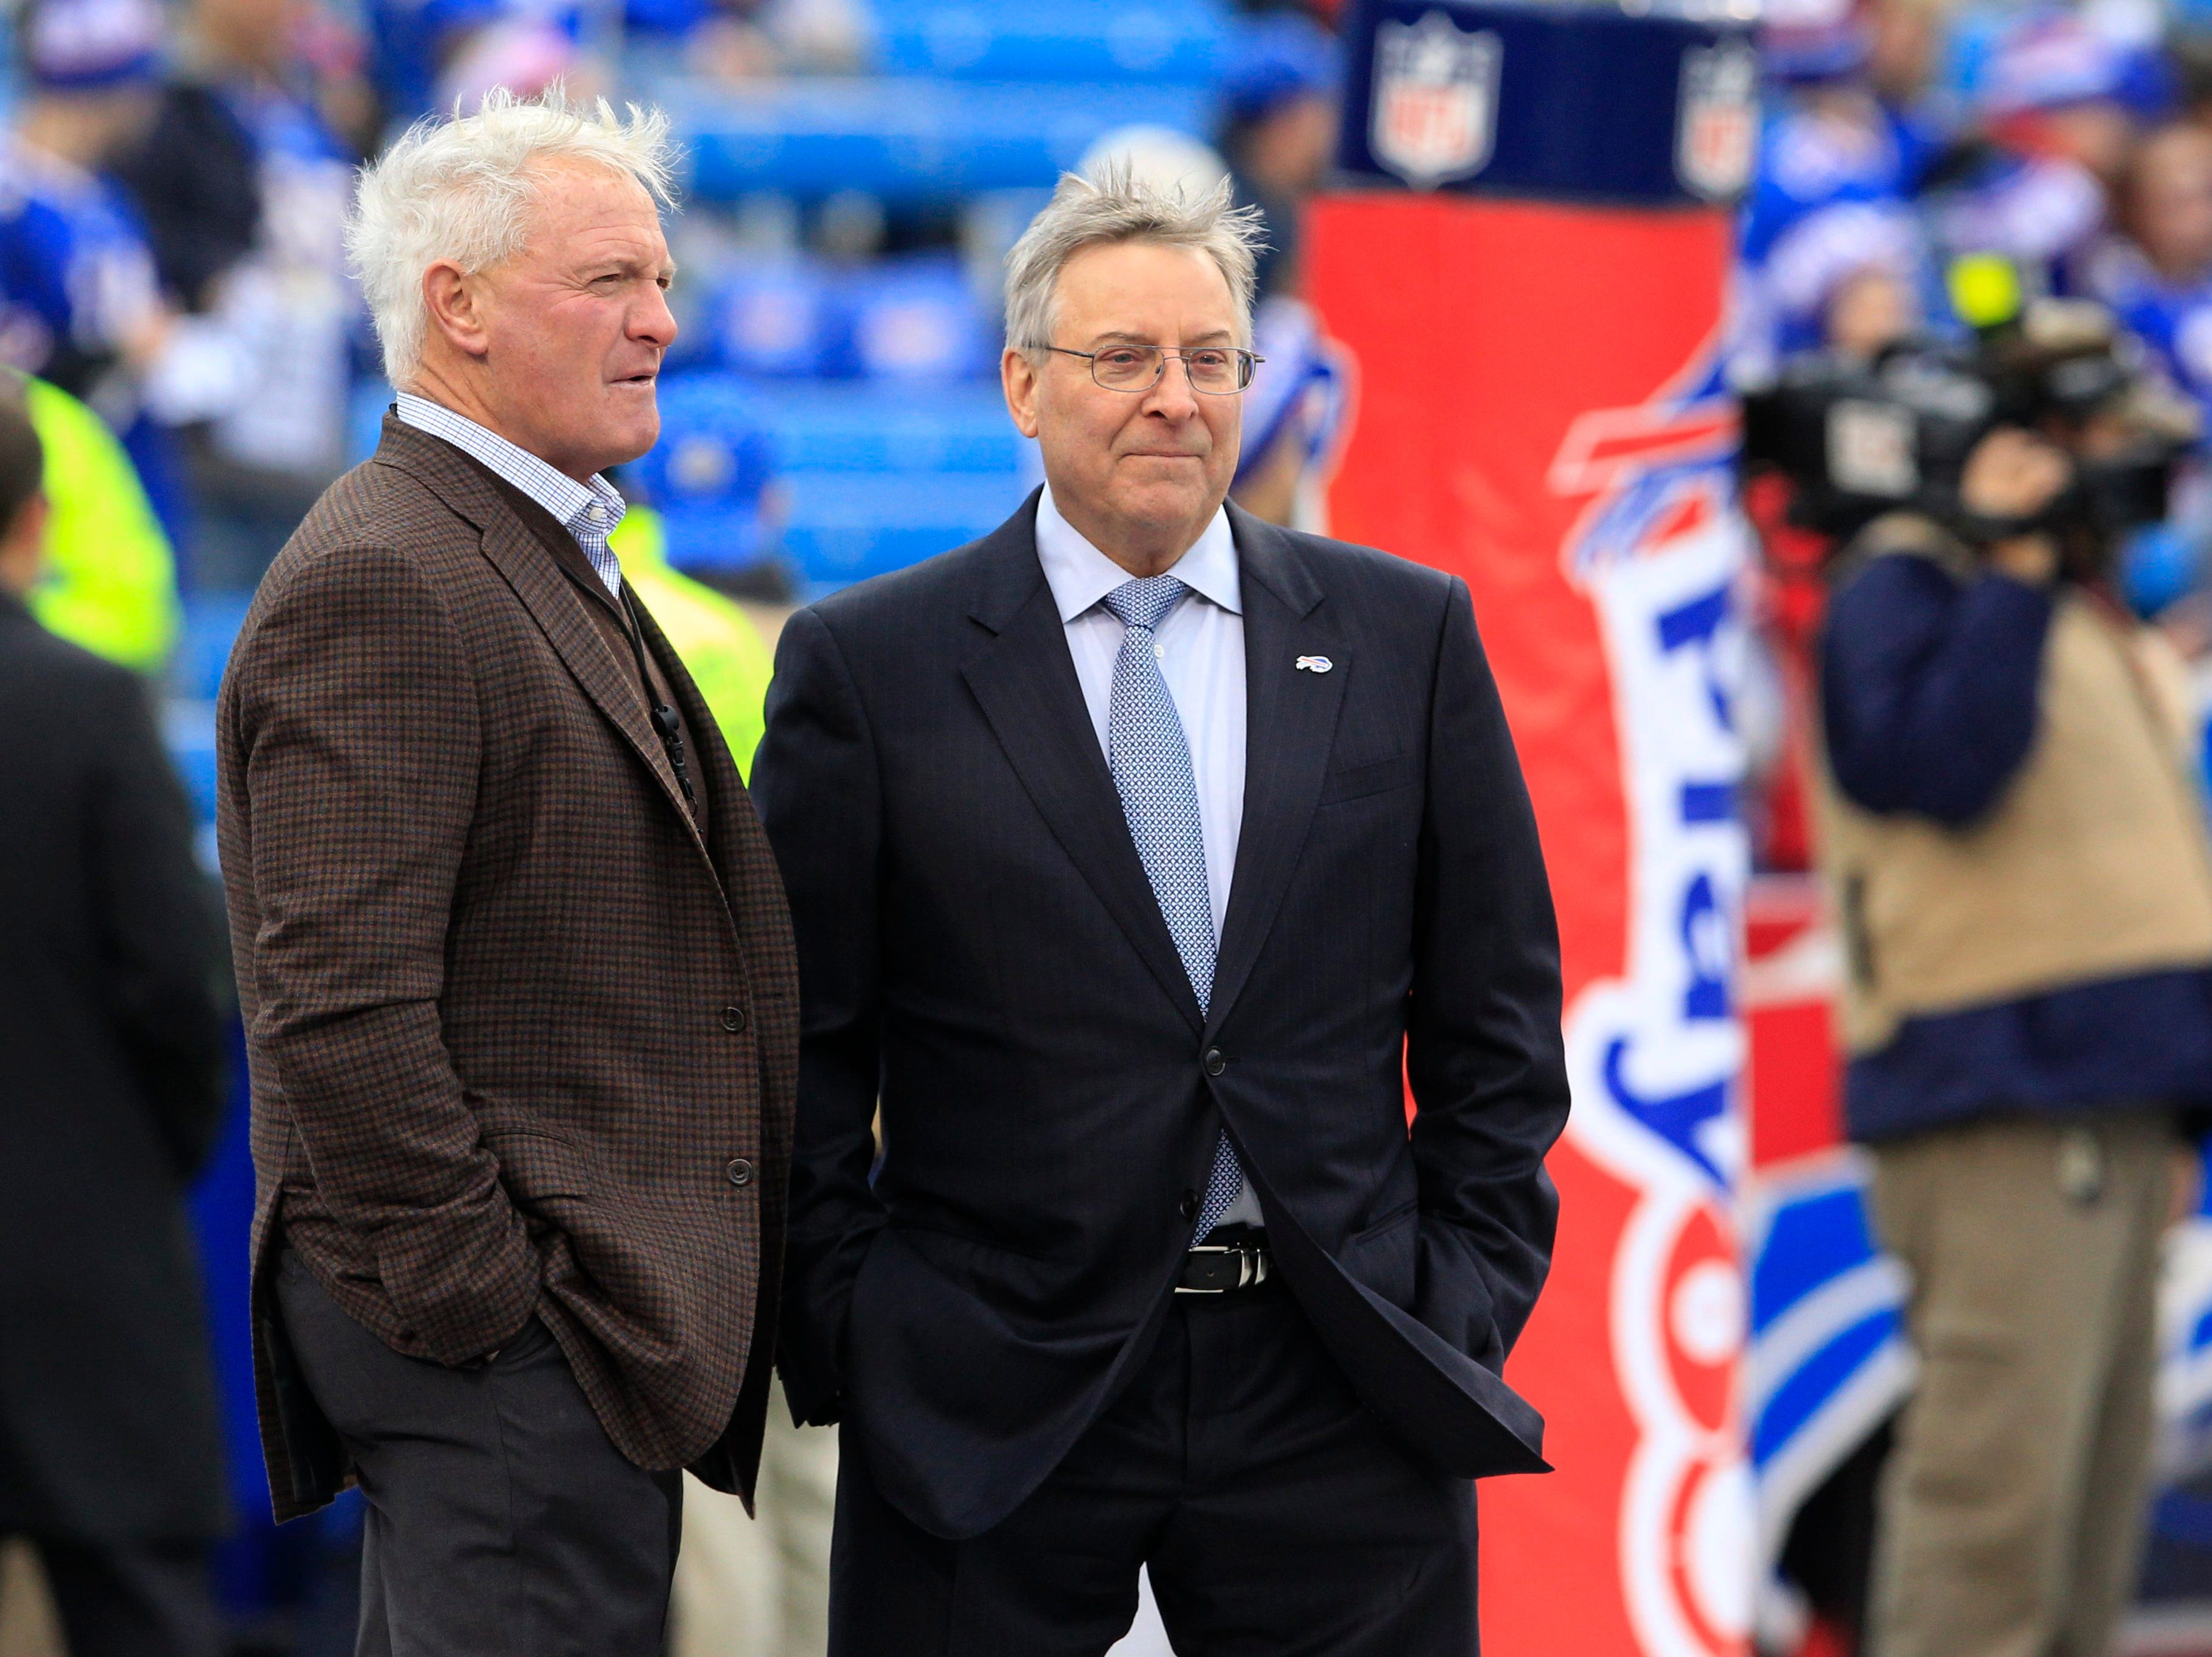 Buffalo Bills owner Terrence Pegula, right, talks to Cleveland Browns owner Jimmy Haslam prior to an NFL football game between their teams, Sunday, Nov. 30, 2014, in Orchard Park, N.J.